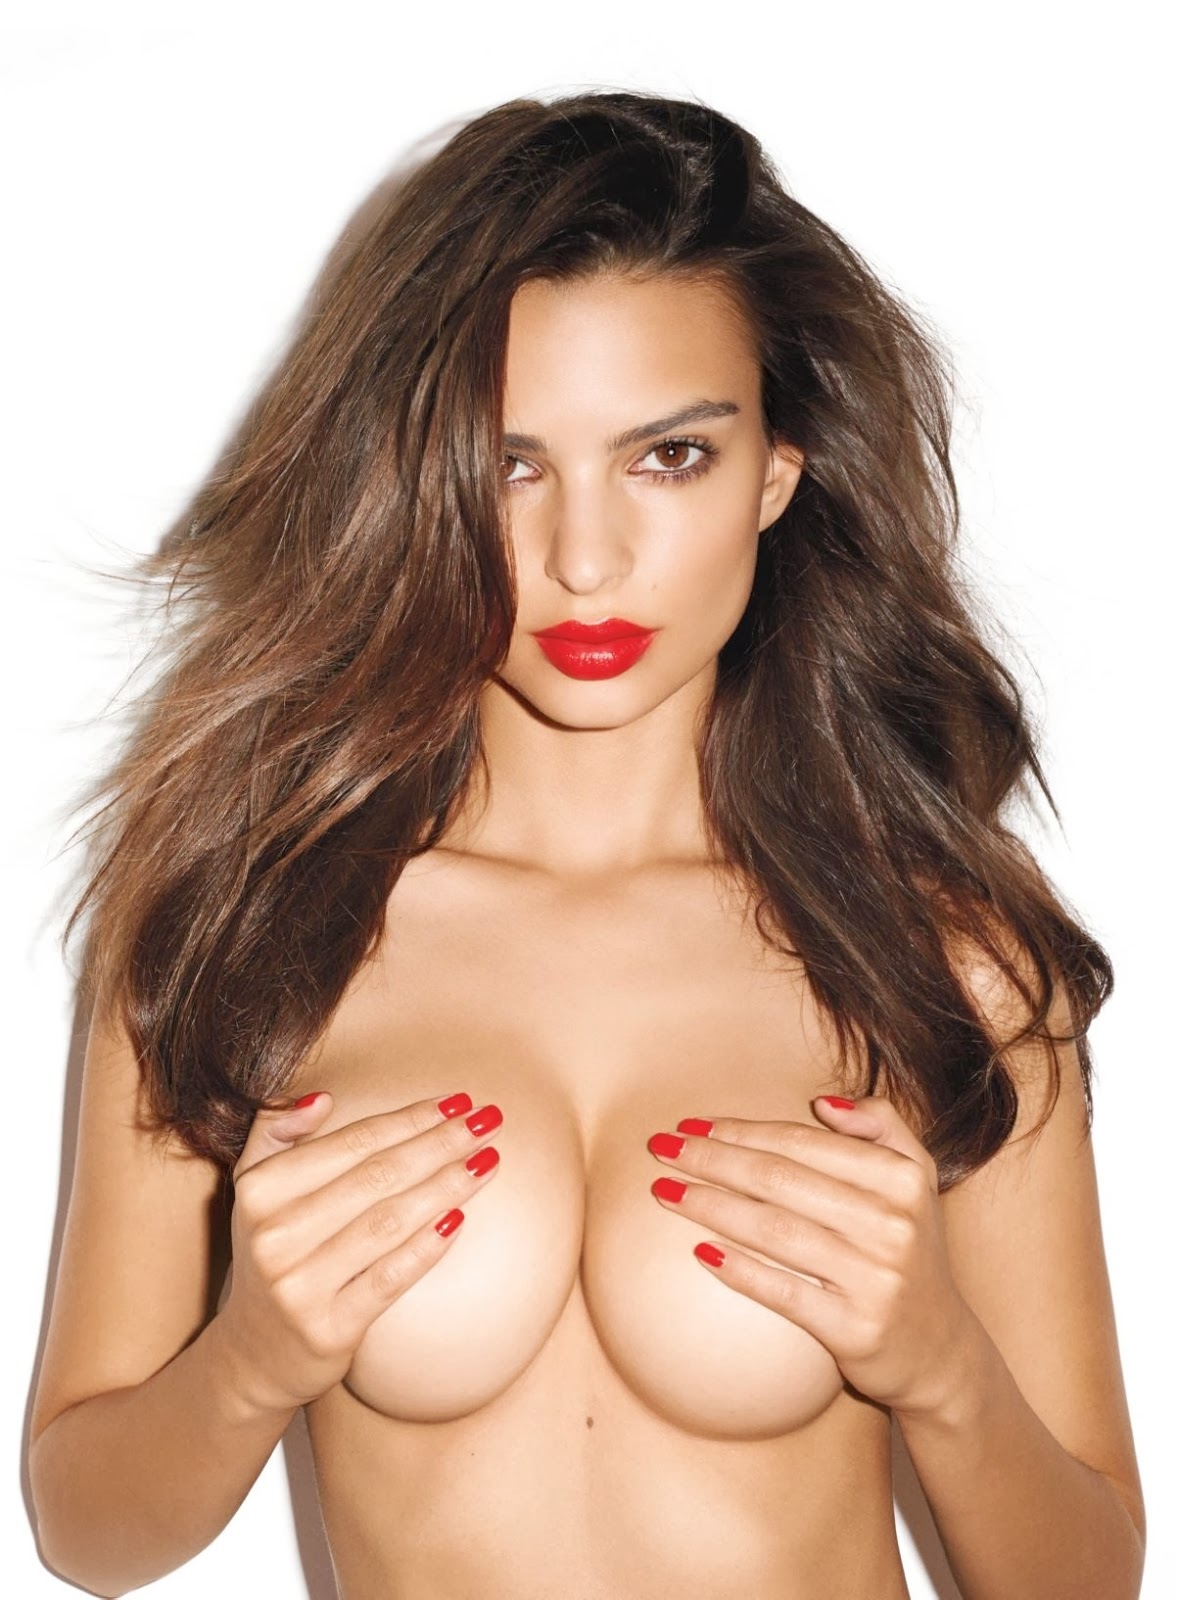 Emily Ratajkowski Topless But Covered Photoshoot By Terry Richardson